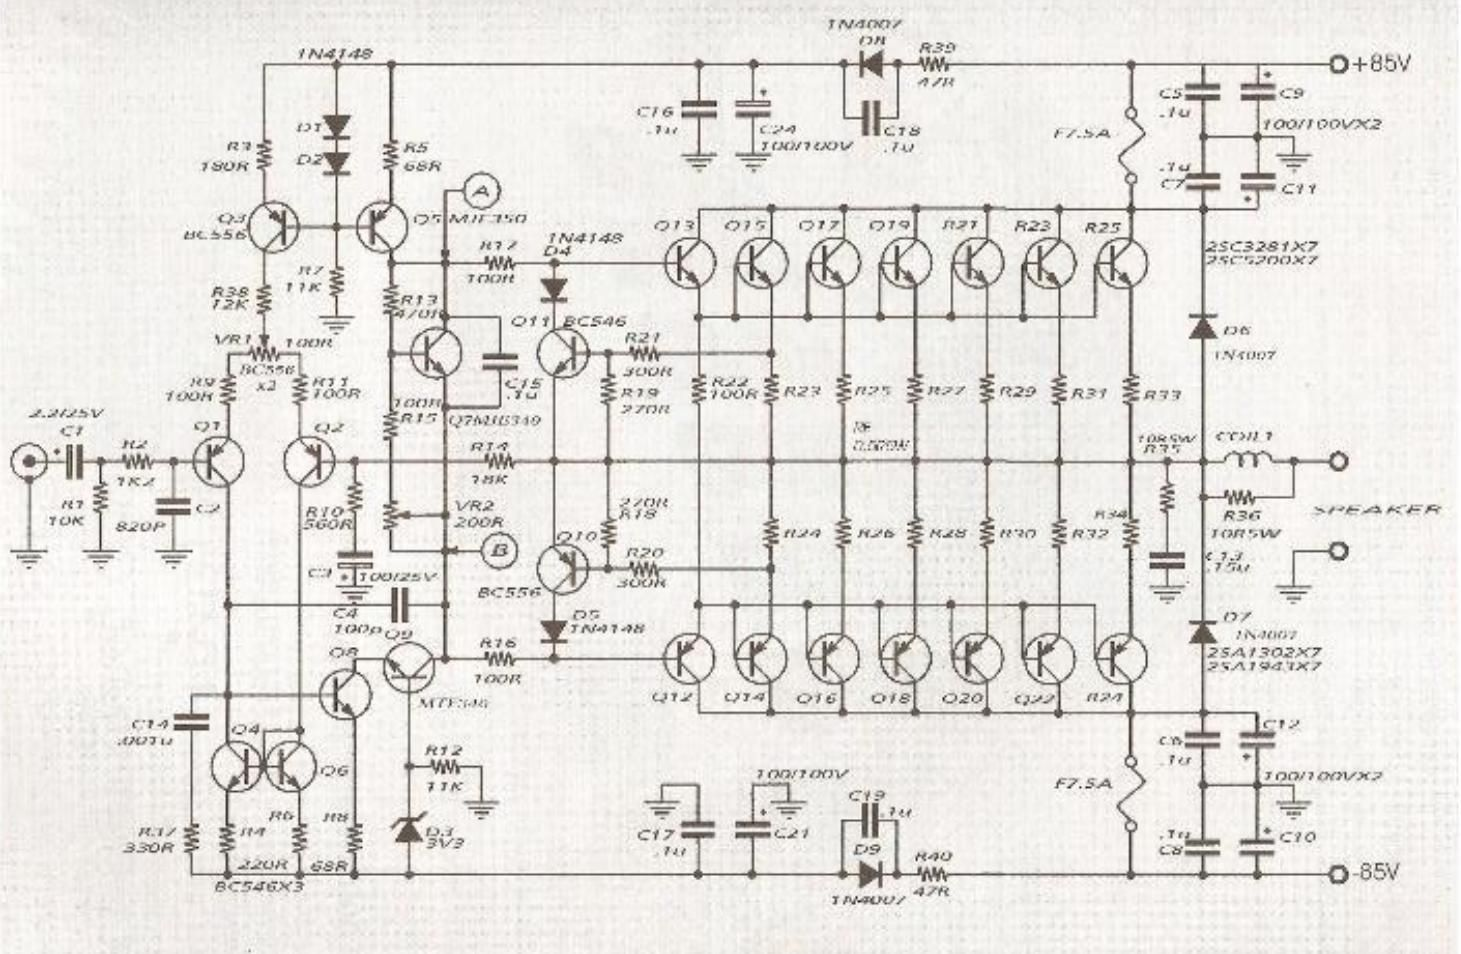 Crown Amp Schematic 600w Audio Amplifier Circuit With 2sc5200 2sa1943 And Pcb Sound